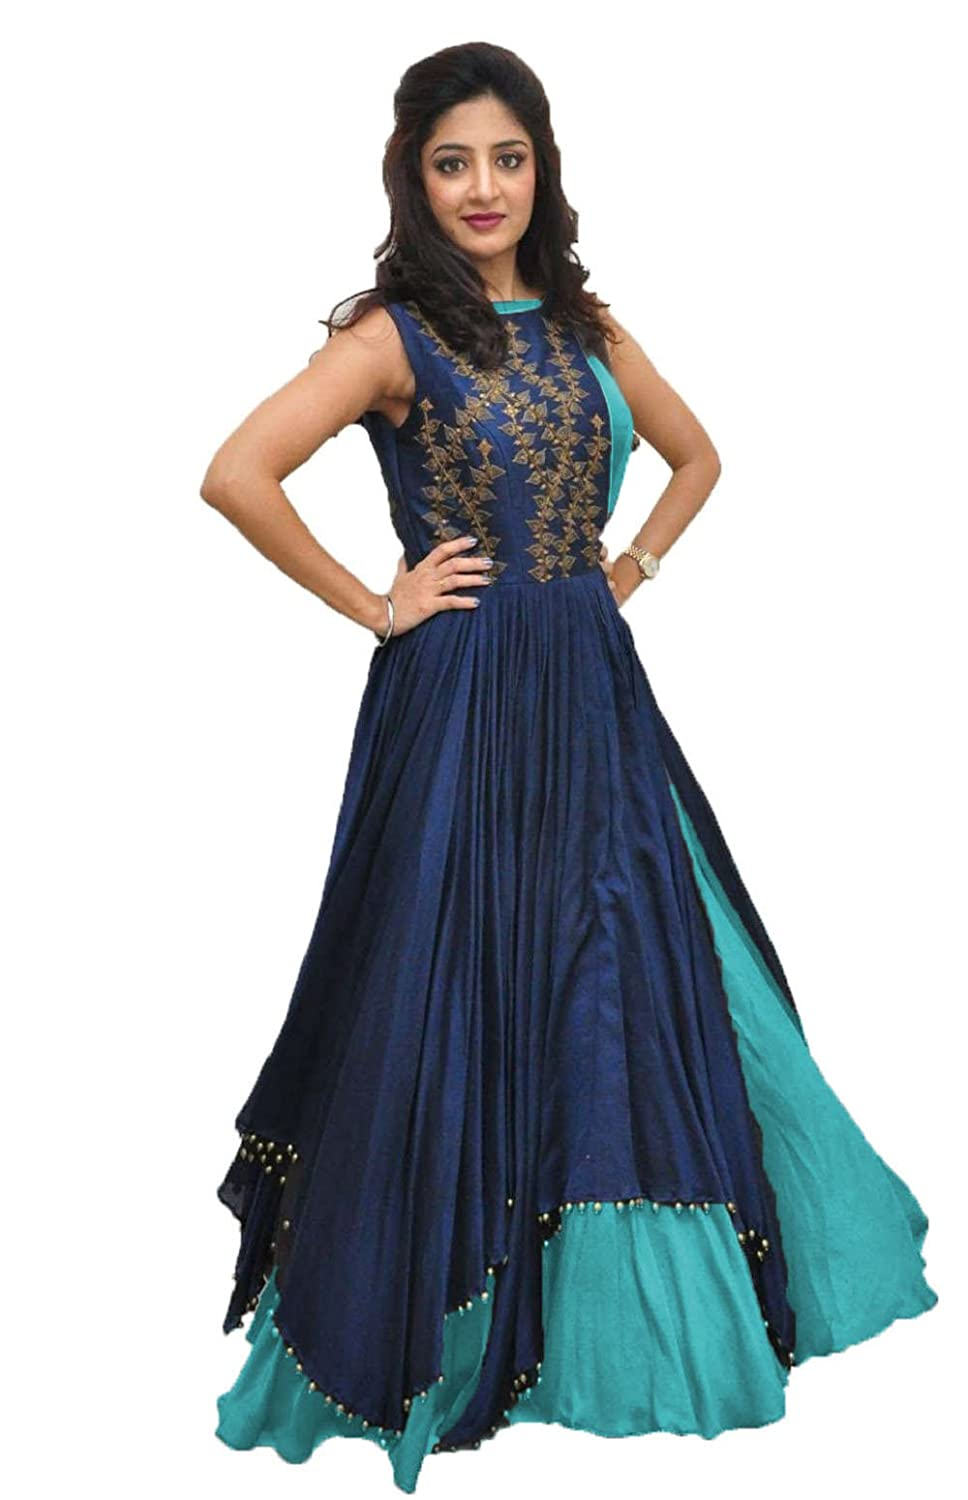 f0d0e0640b6 Rudra Zone Gown  Amazon.in  Clothing   Accessories